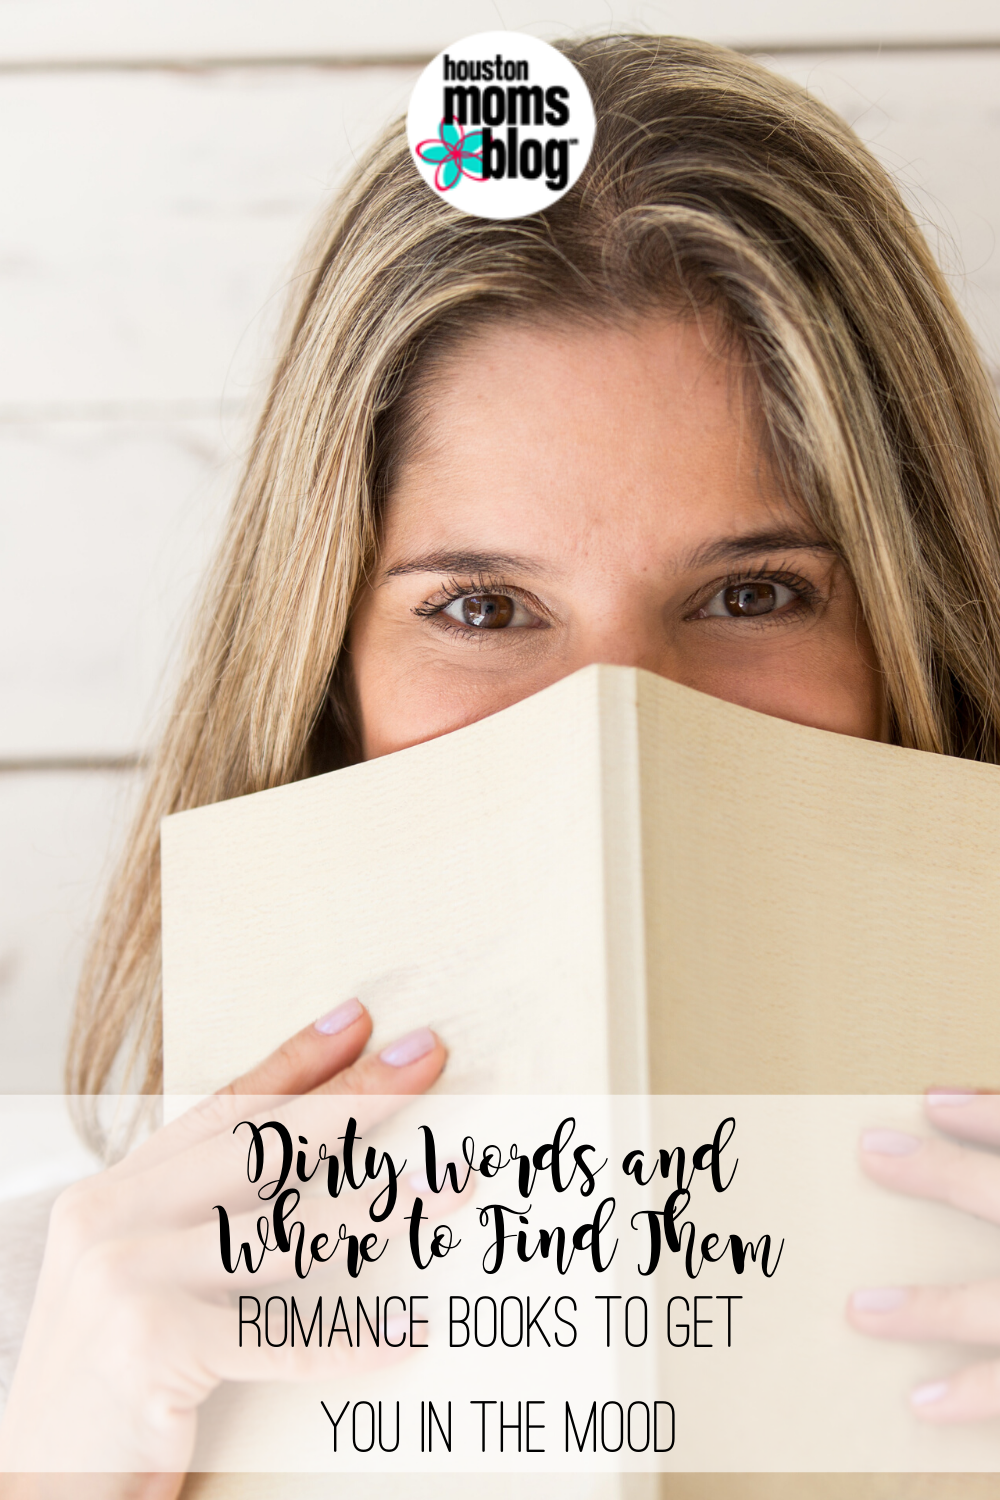 """Houston Moms Blog """"Dirty Words and Where to Find Them:: Romance Books to Get You in the Mood"""" #houstonmomsblog #momsaroundhouston"""